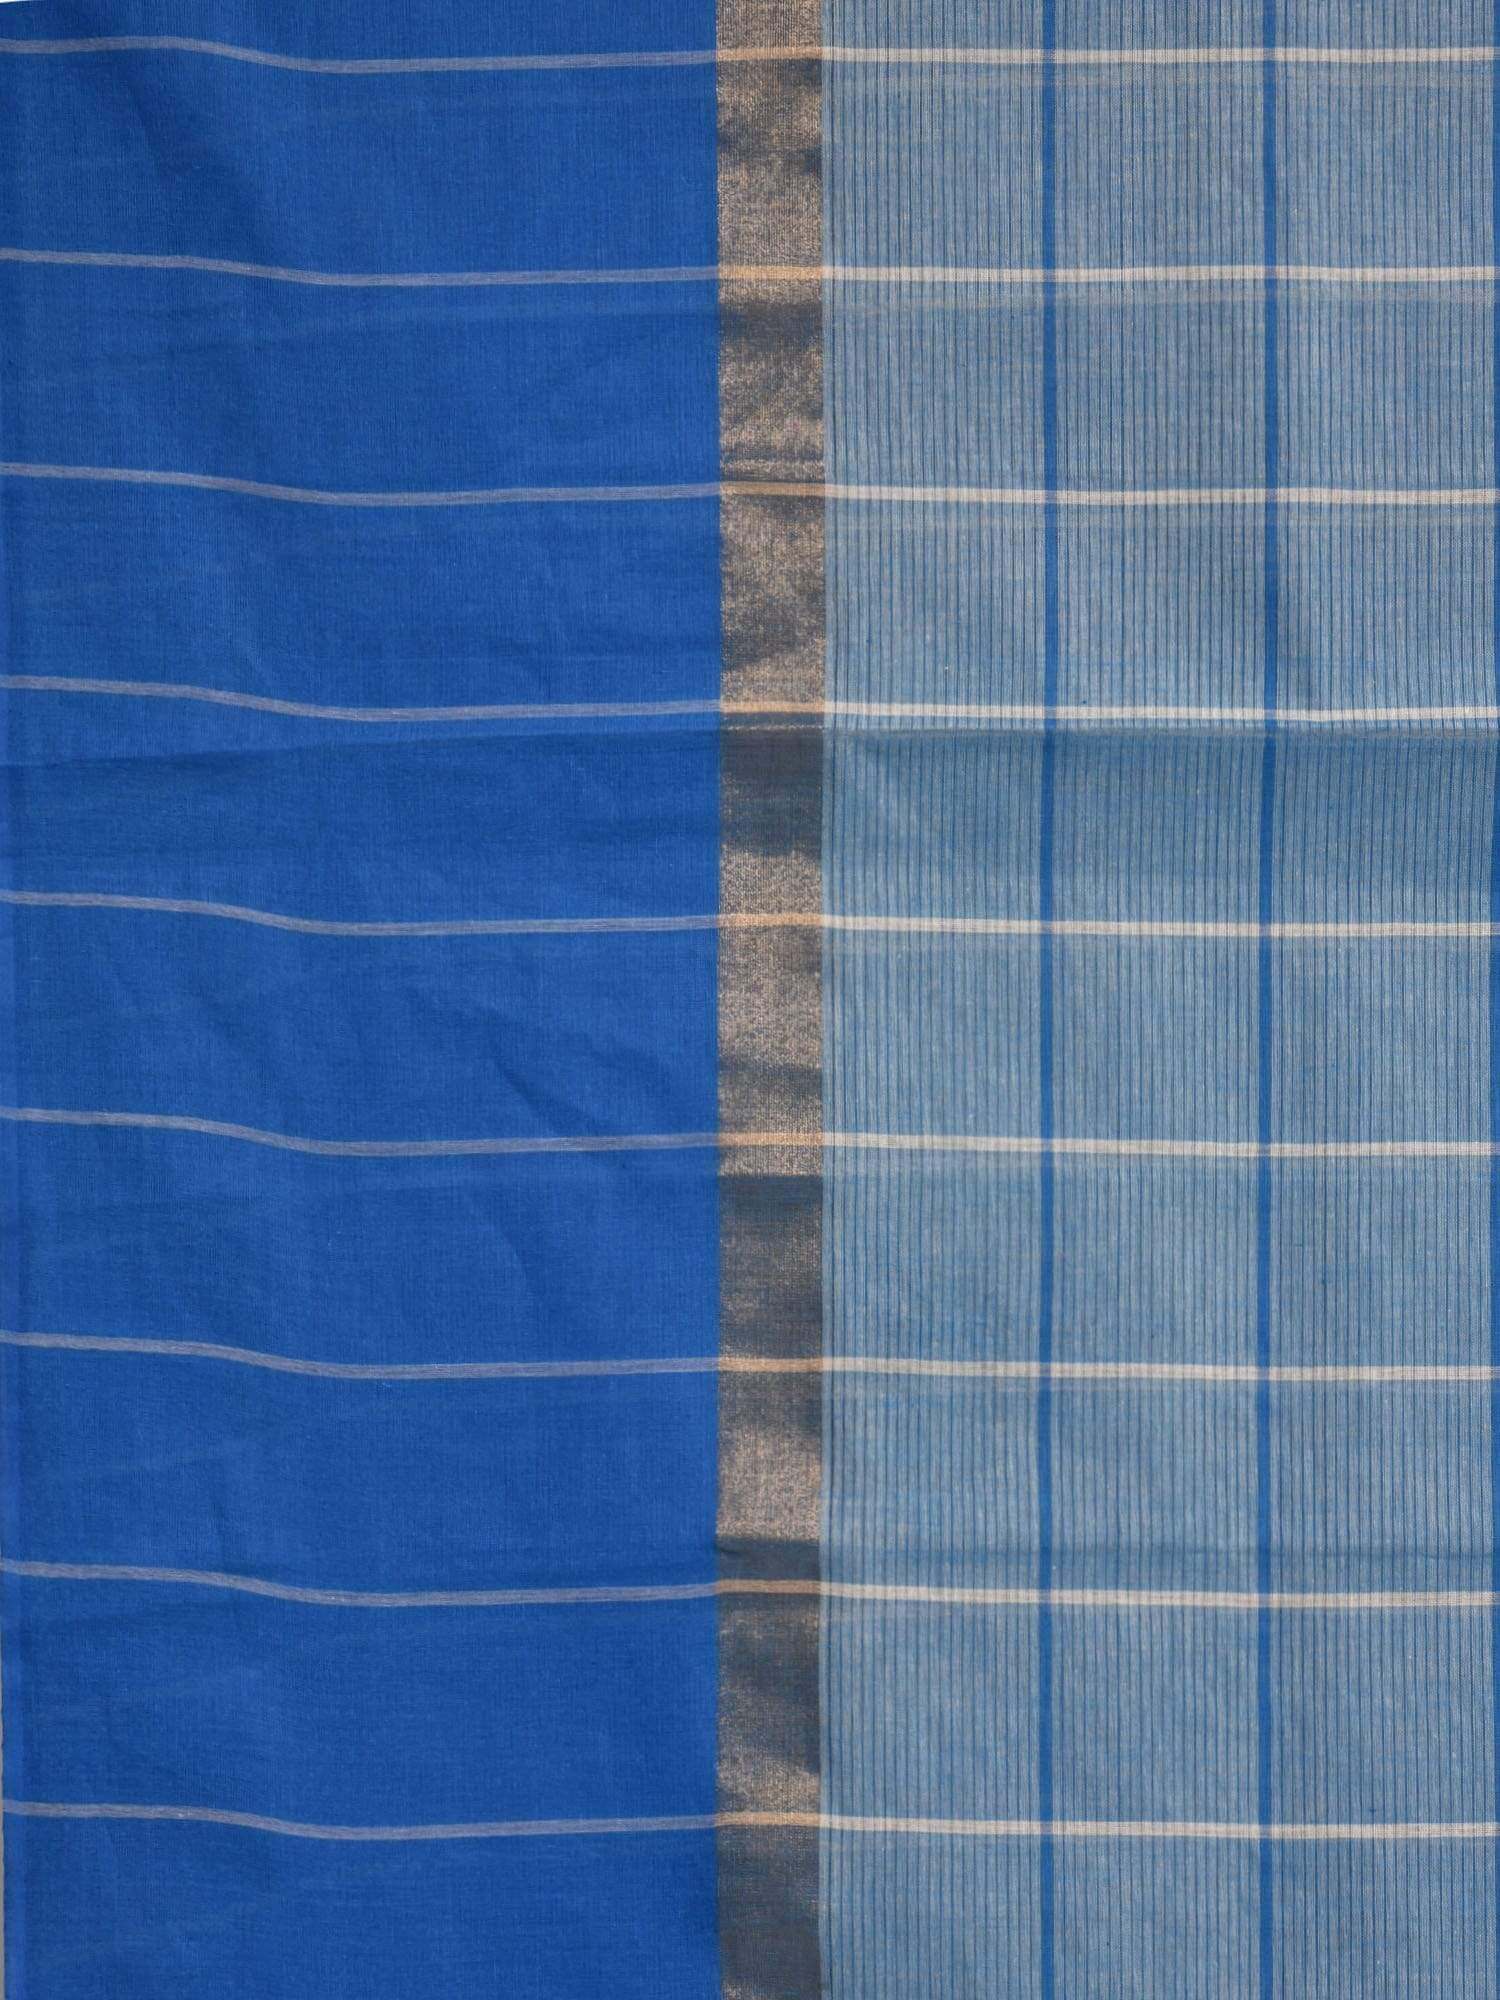 Blue Venkatagiri Cotton Handloom Saree with Checks Design V0065